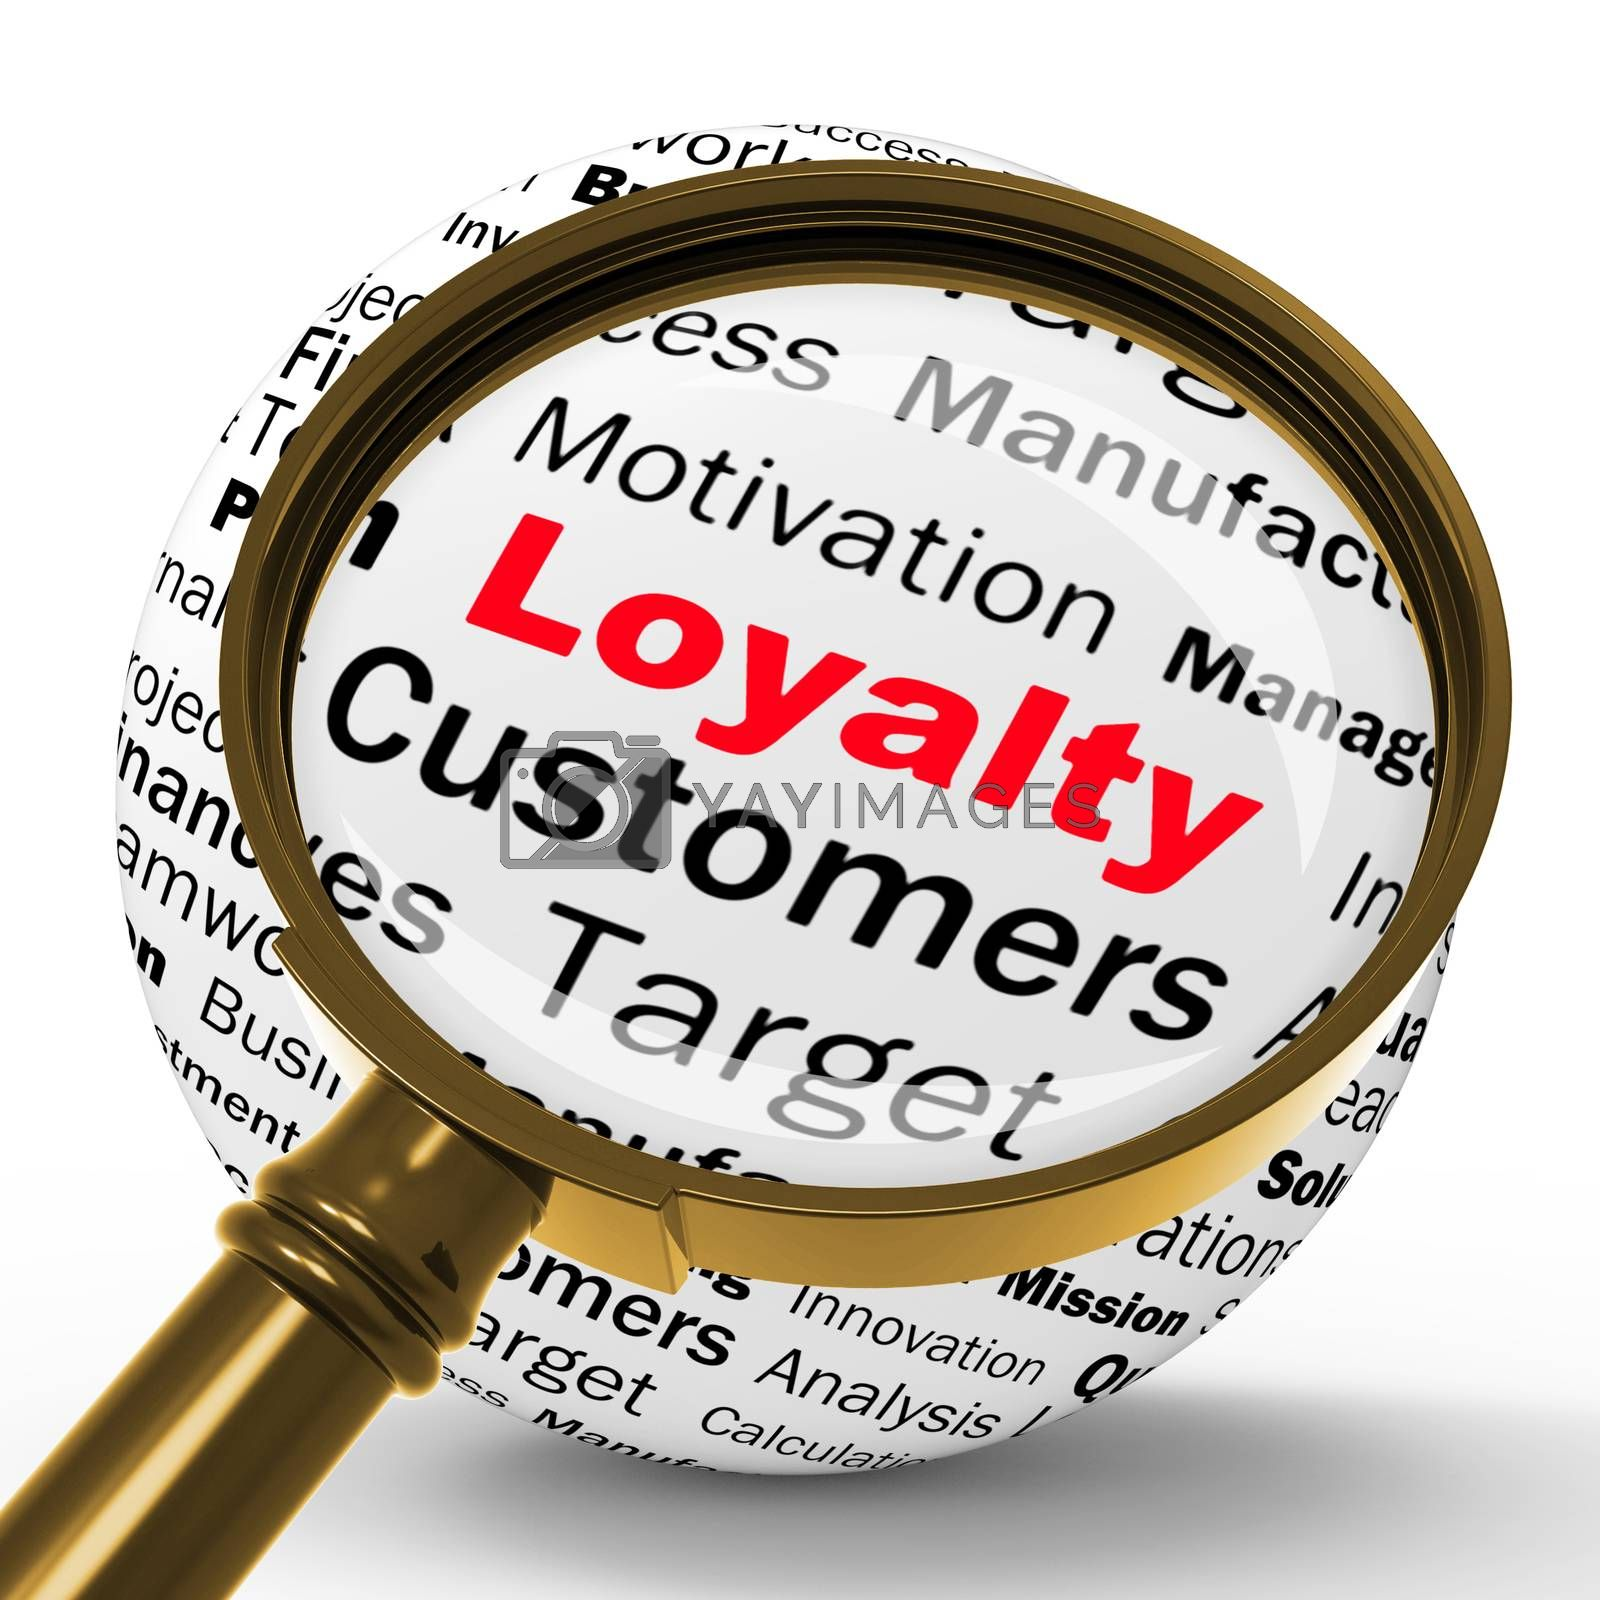 Loyalty Magnifier Definition Shows Honest Fidelity And Reliabili by stuartmiles